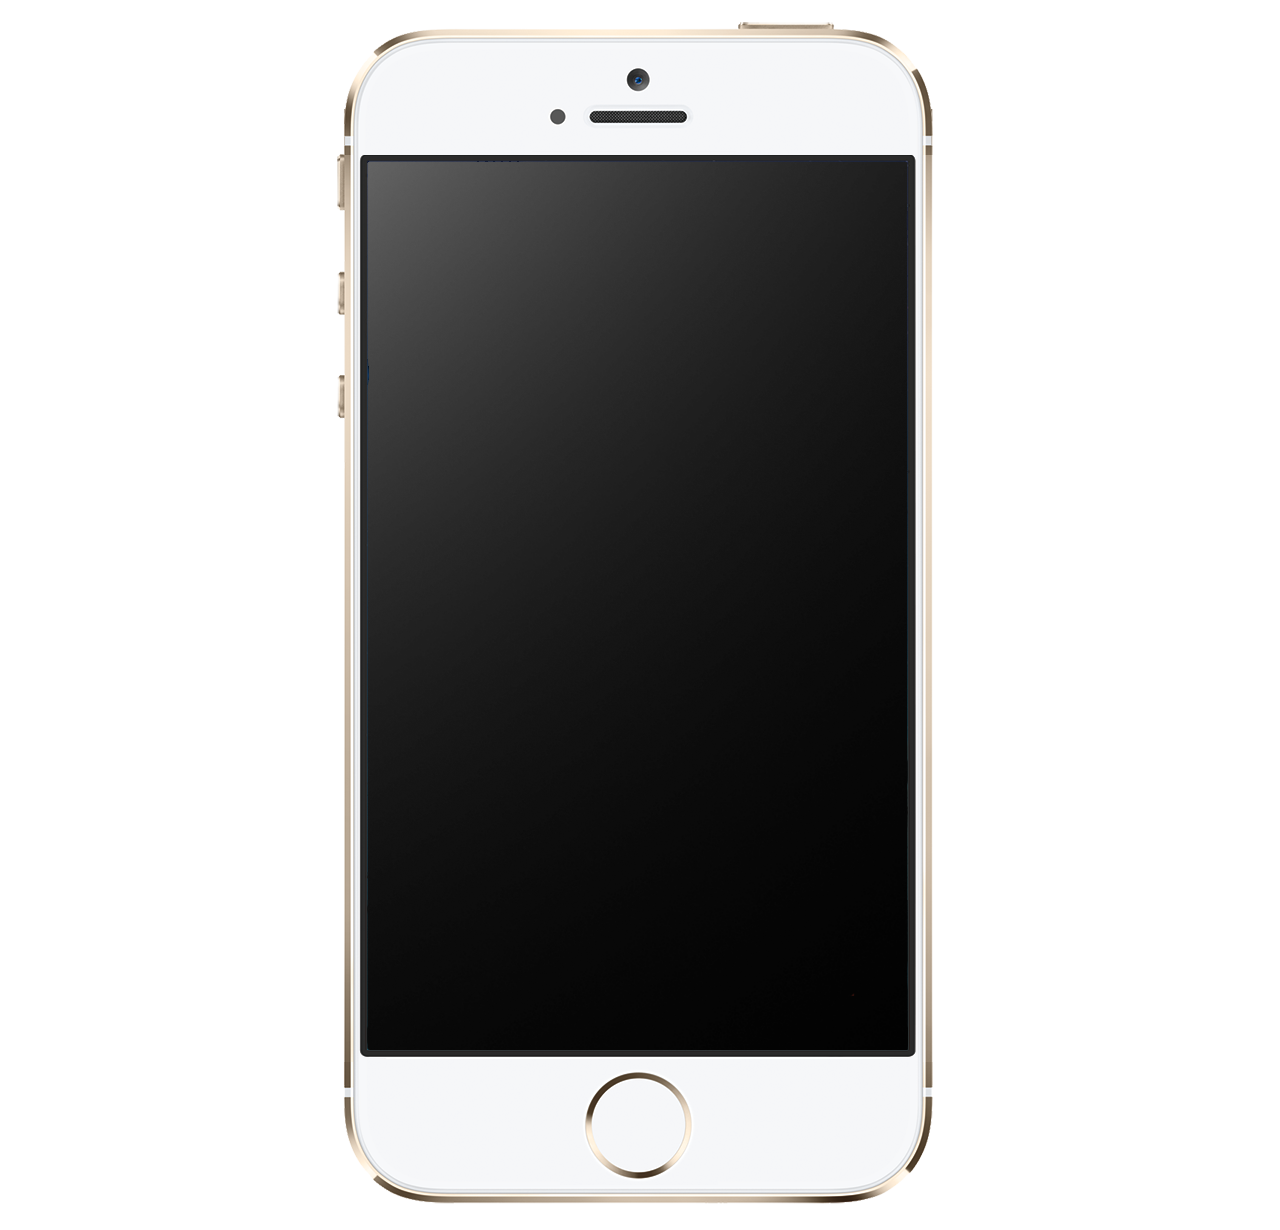 iphone png image gold